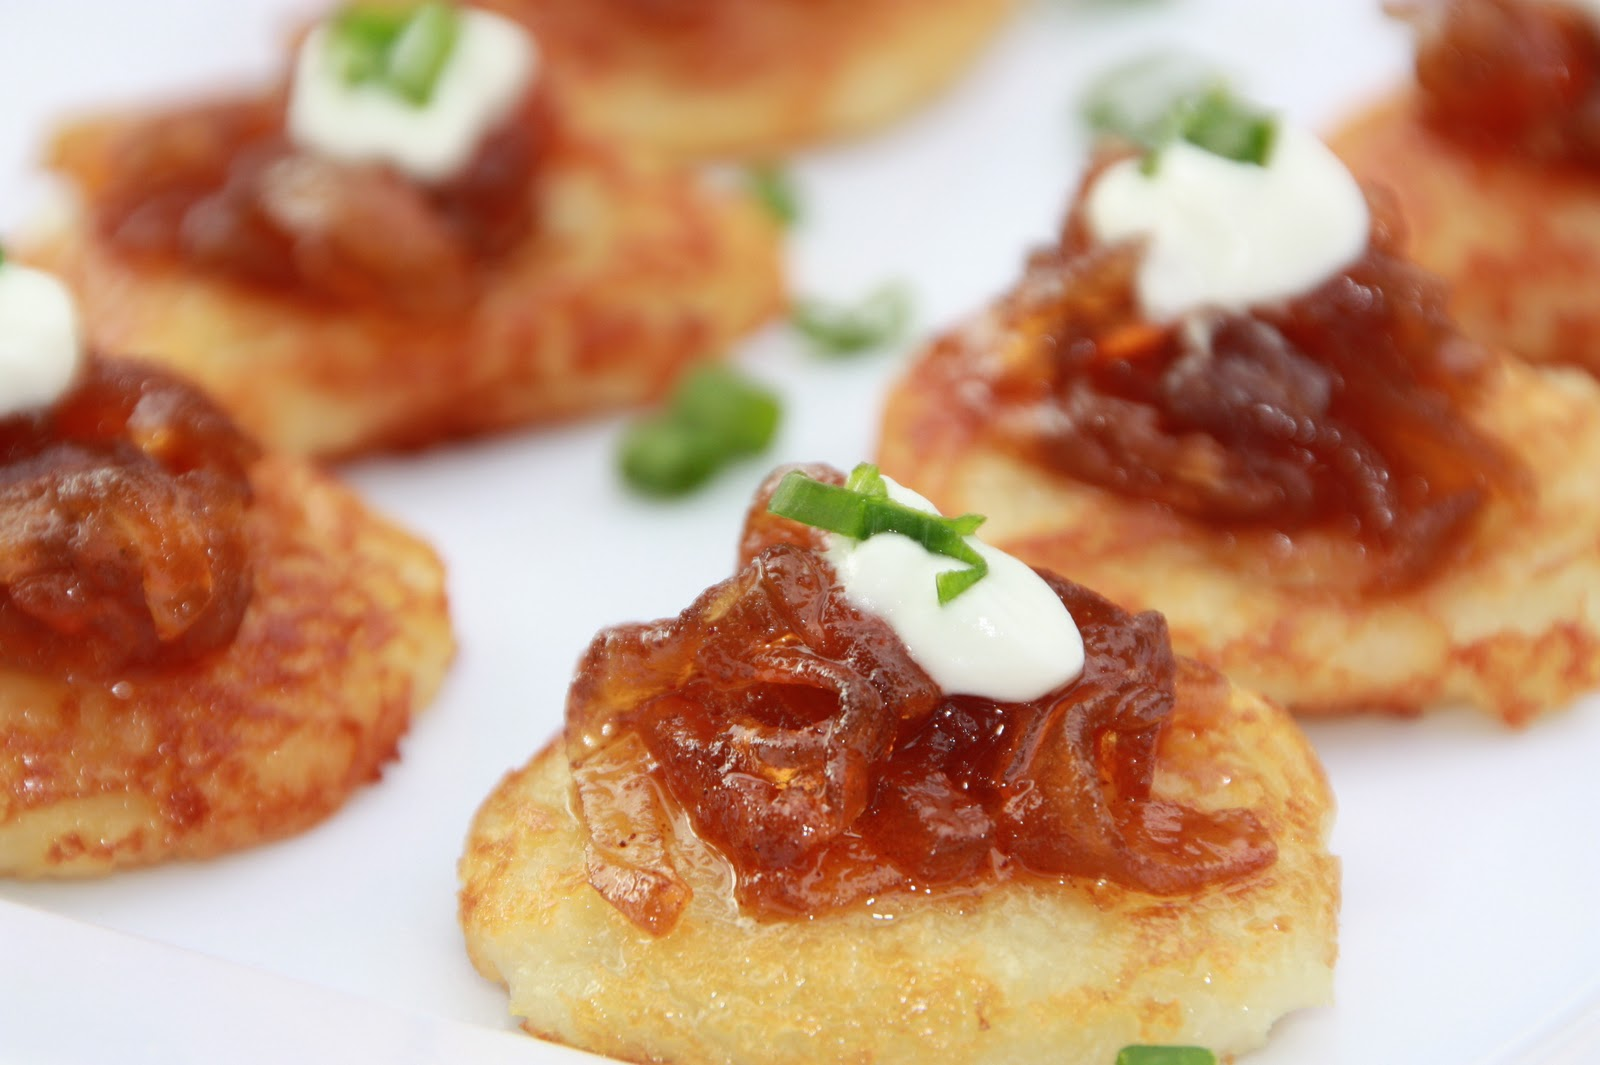 Everyday Sisters Mini Potato Pancakes With Carmelized Apples